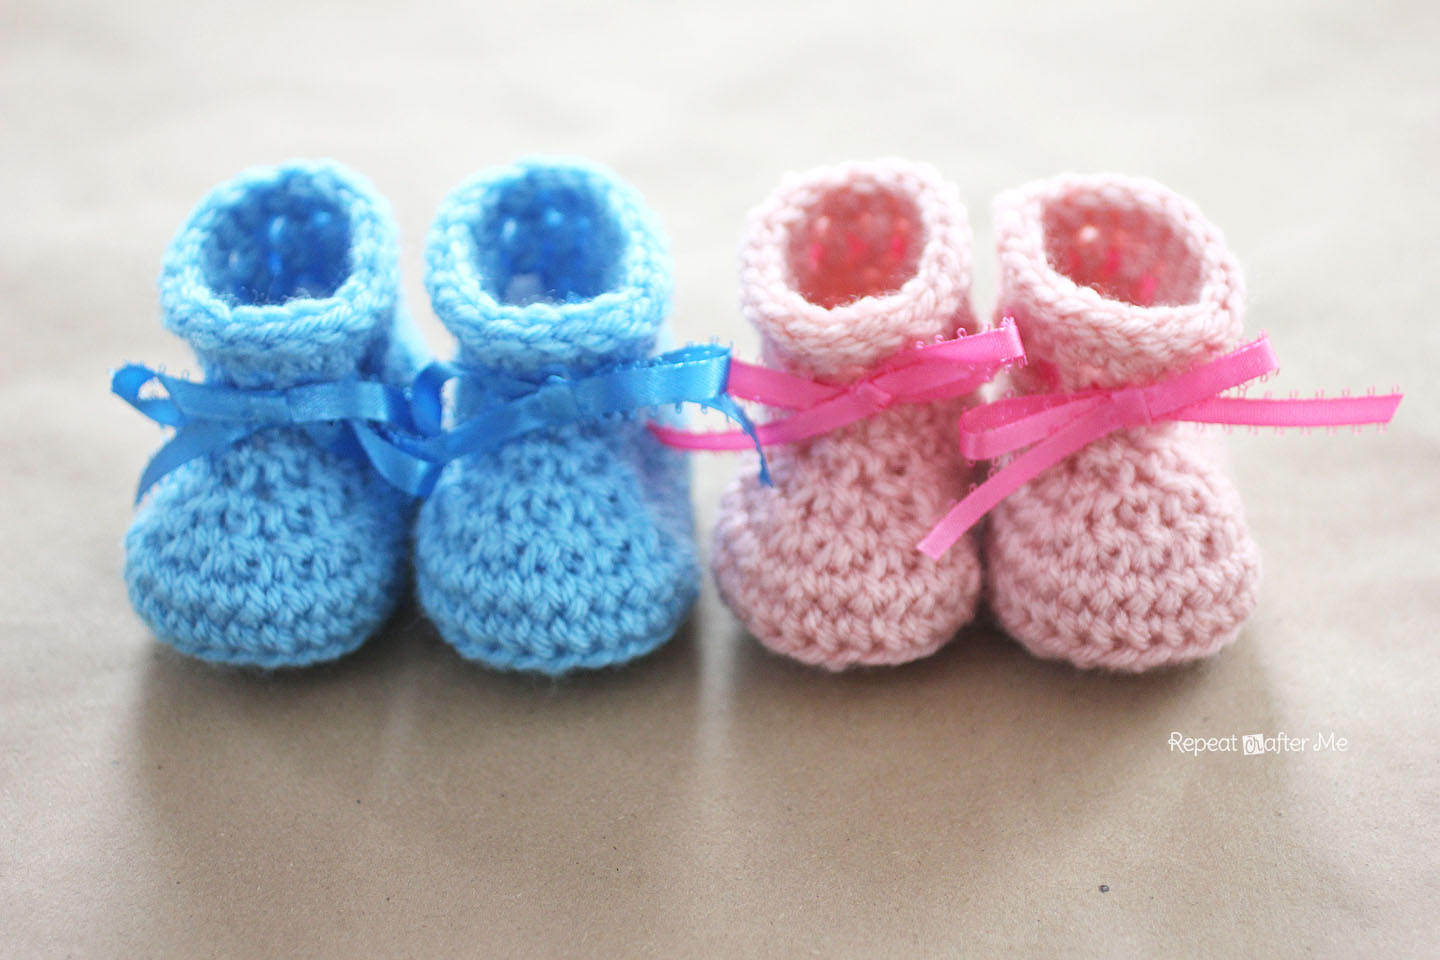 5ef4b39cd Crochet Newborn Baby Booties Pattern - Repeat Crafter Me